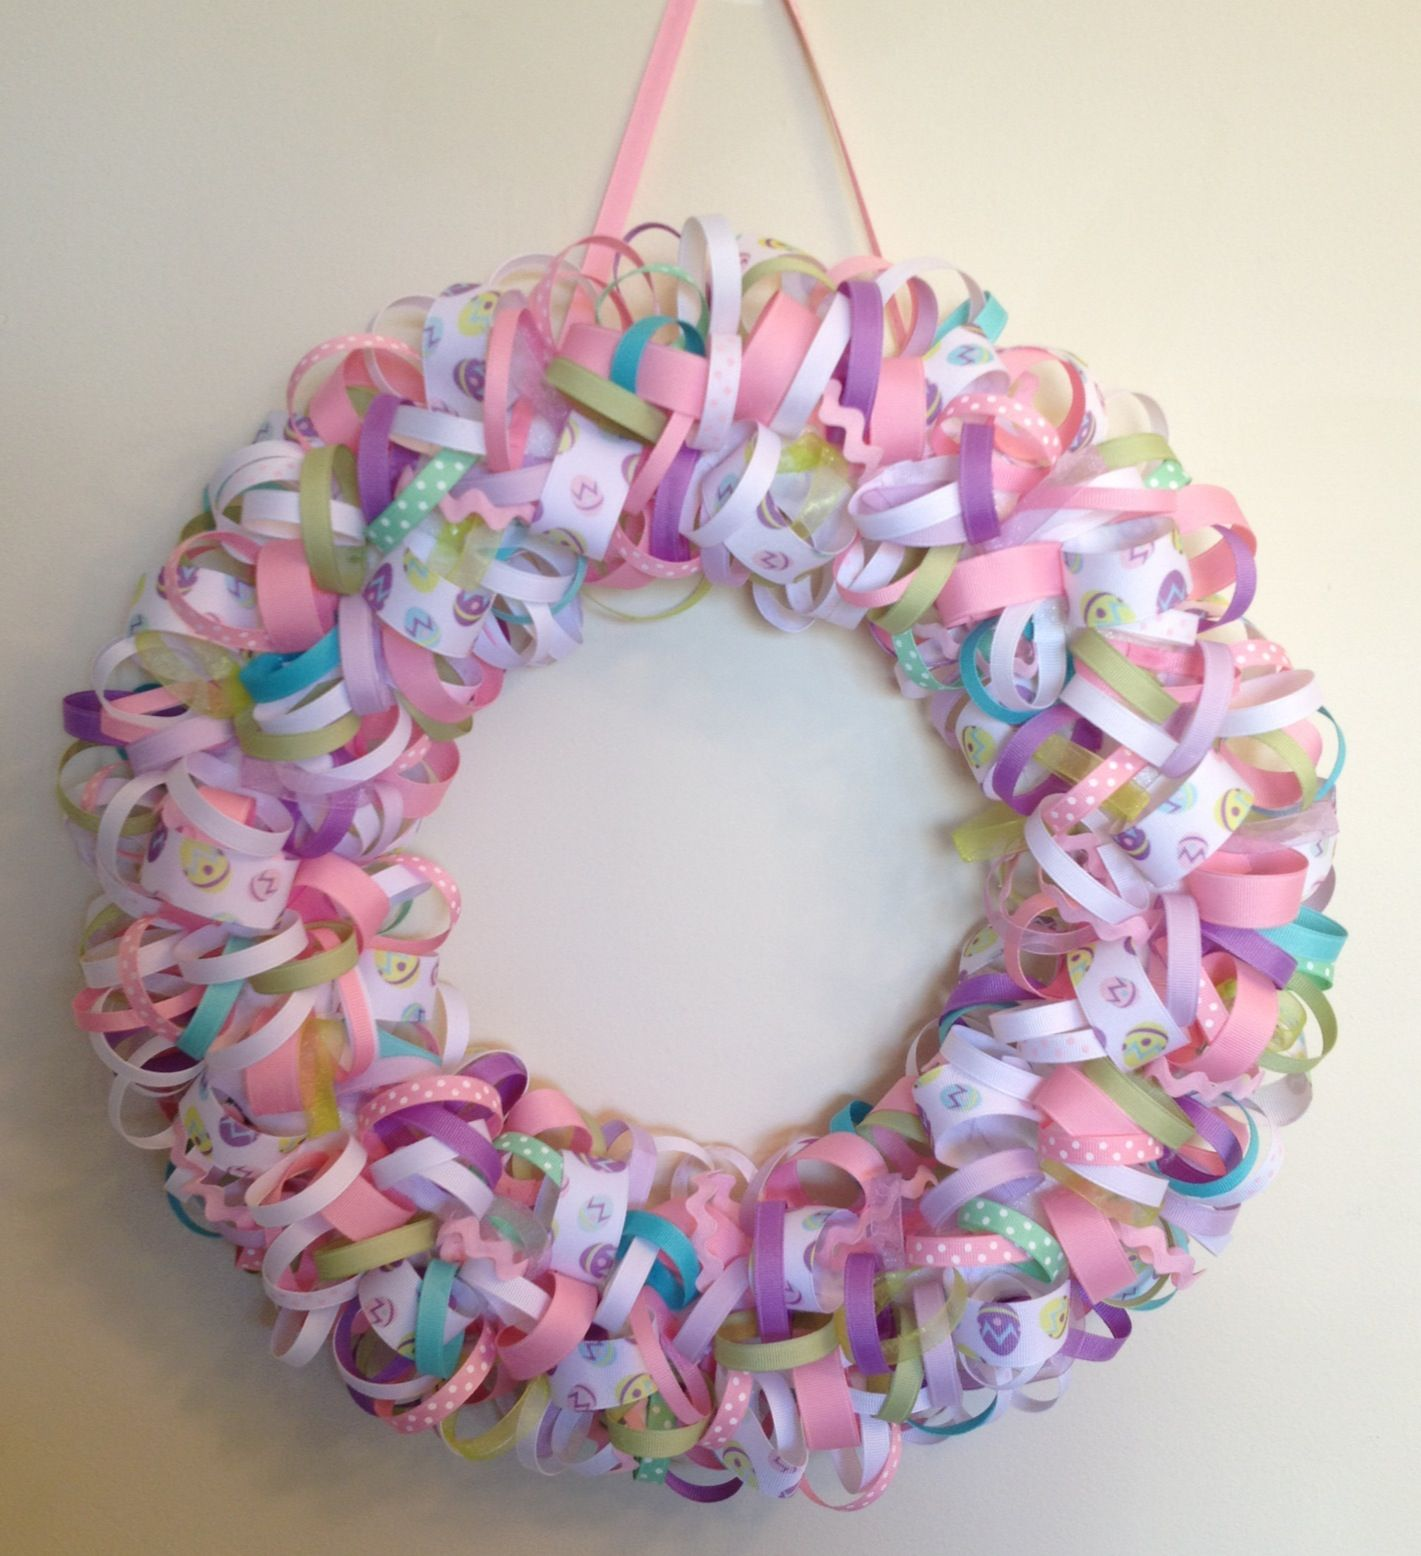 Easter Egg Wreath | I can do it all by myself | Pinterest